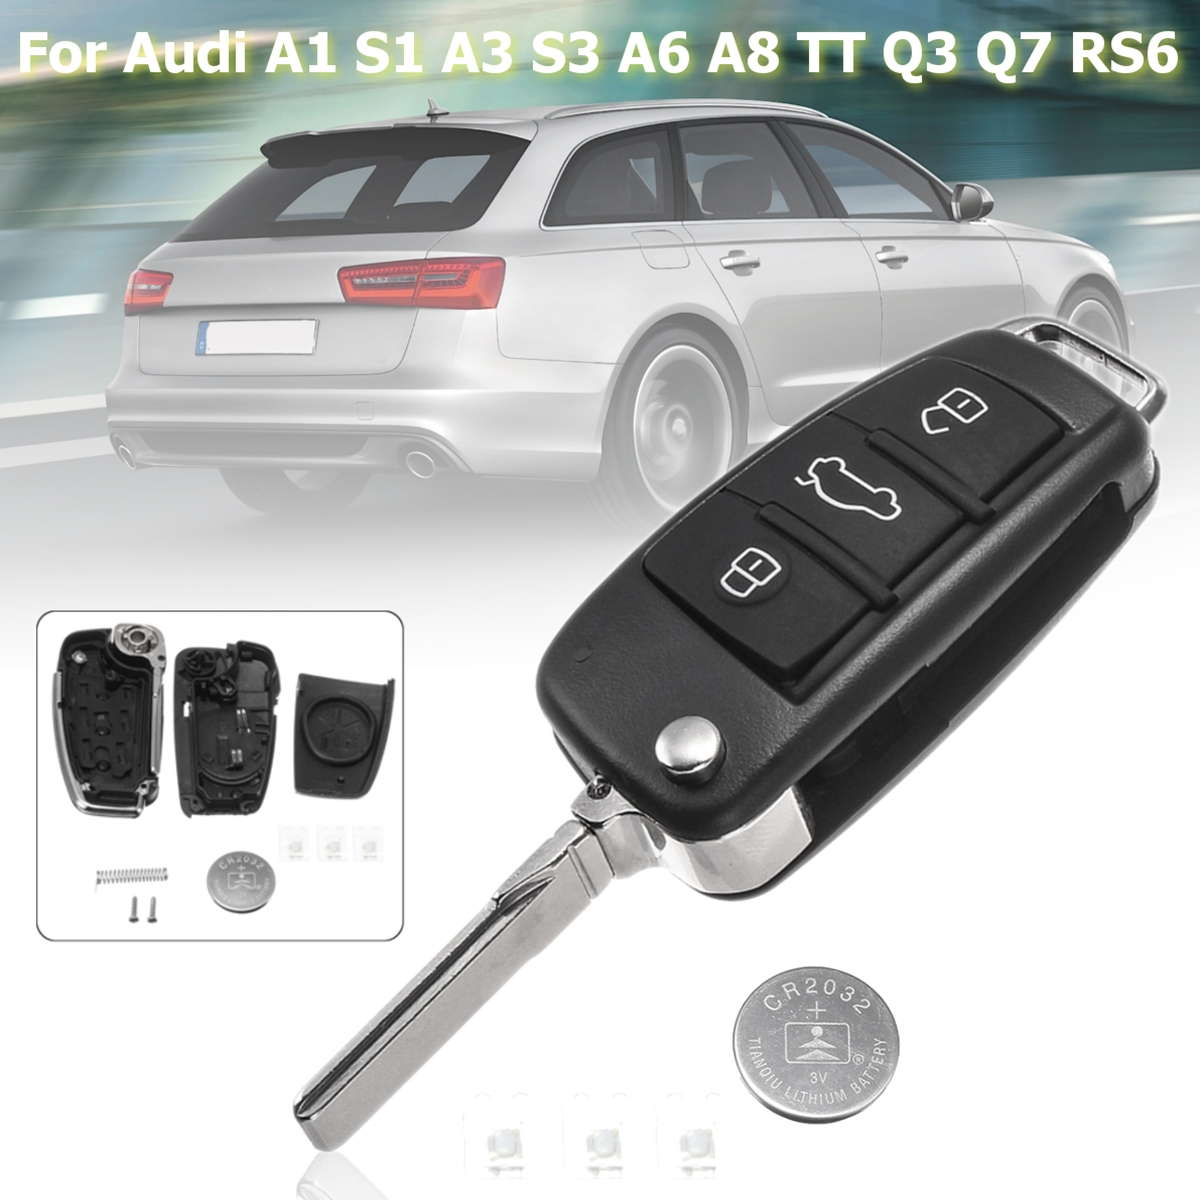 US $3 71 7% OFF|With 3 switches 1 CR2032 battery 3 Buttons Remote Key Fob  Case Shell For Audi A3 A4 A6 A8 Q7 TT 1997 2018 2017 2016 2015 2010-in Car